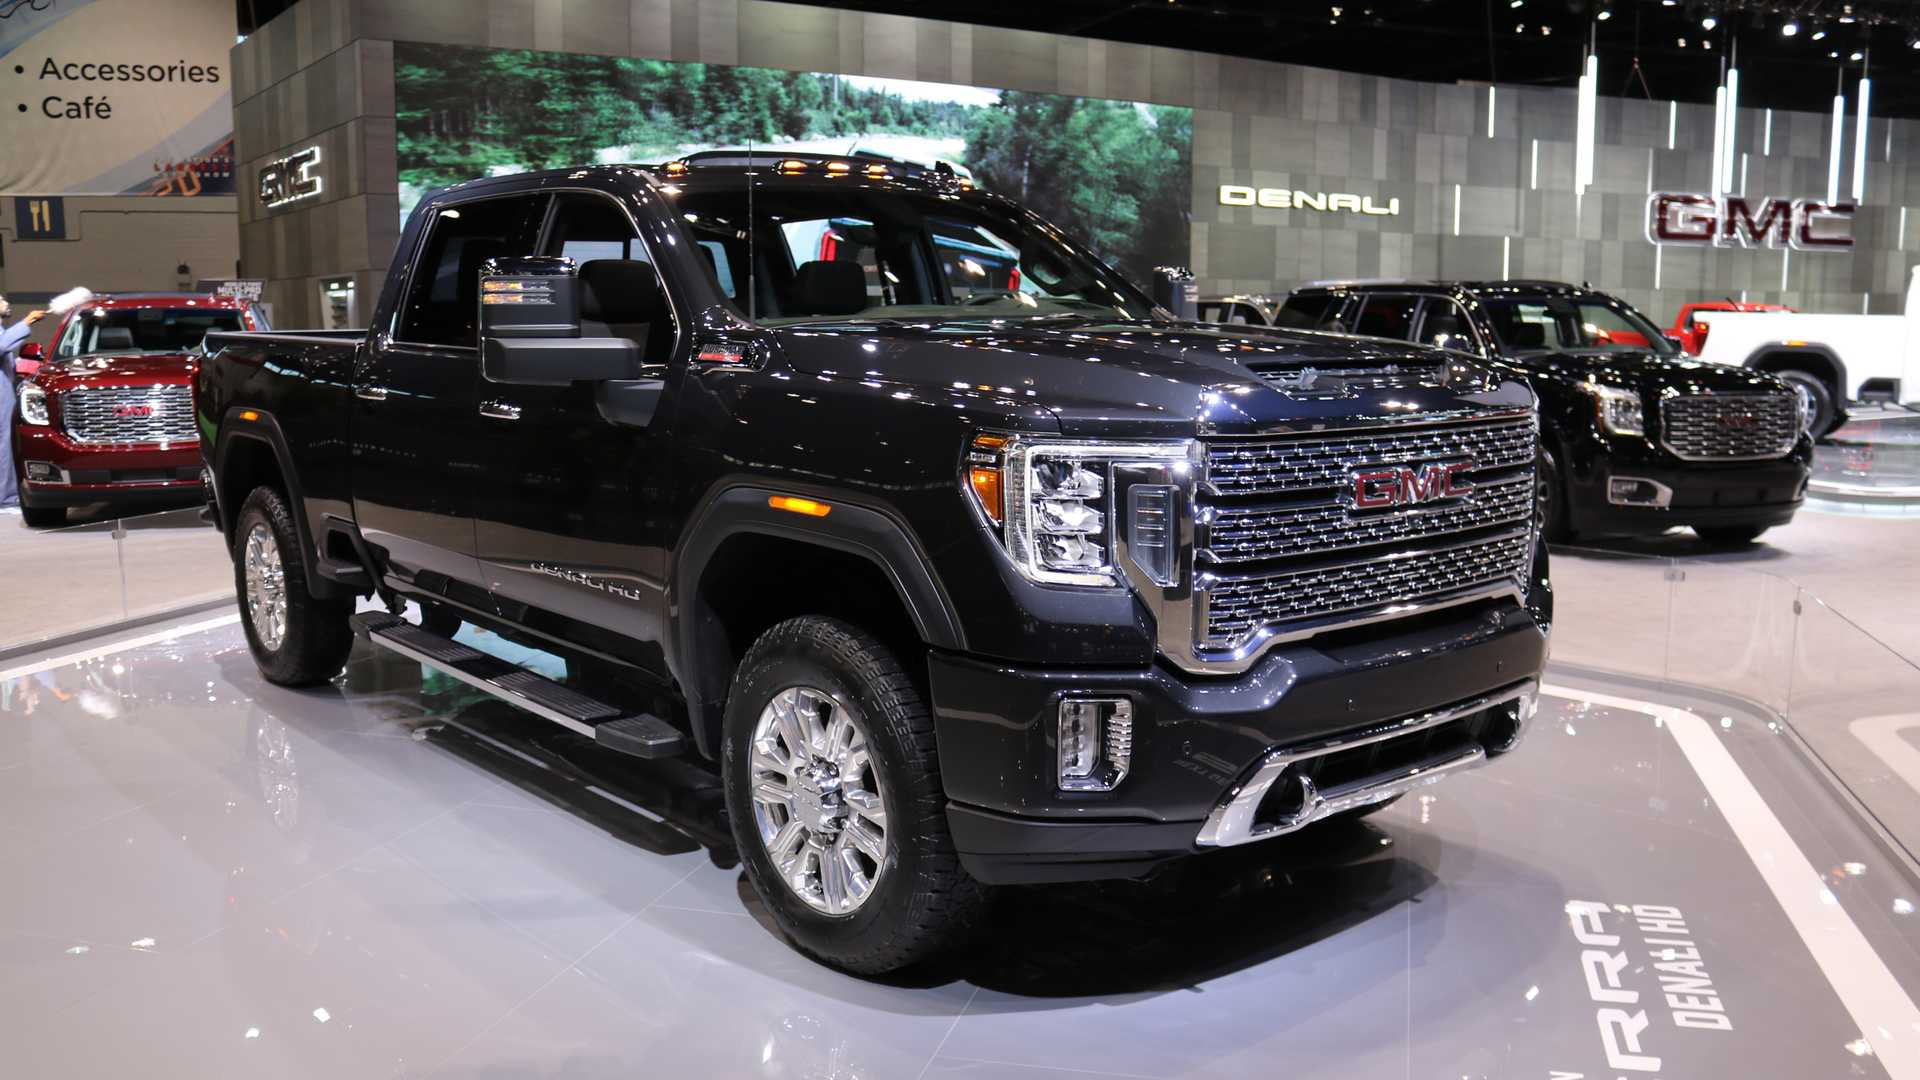 50 Concept of When Will The 2020 Gmc Denali Be Available Configurations with When Will The 2020 Gmc Denali Be Available